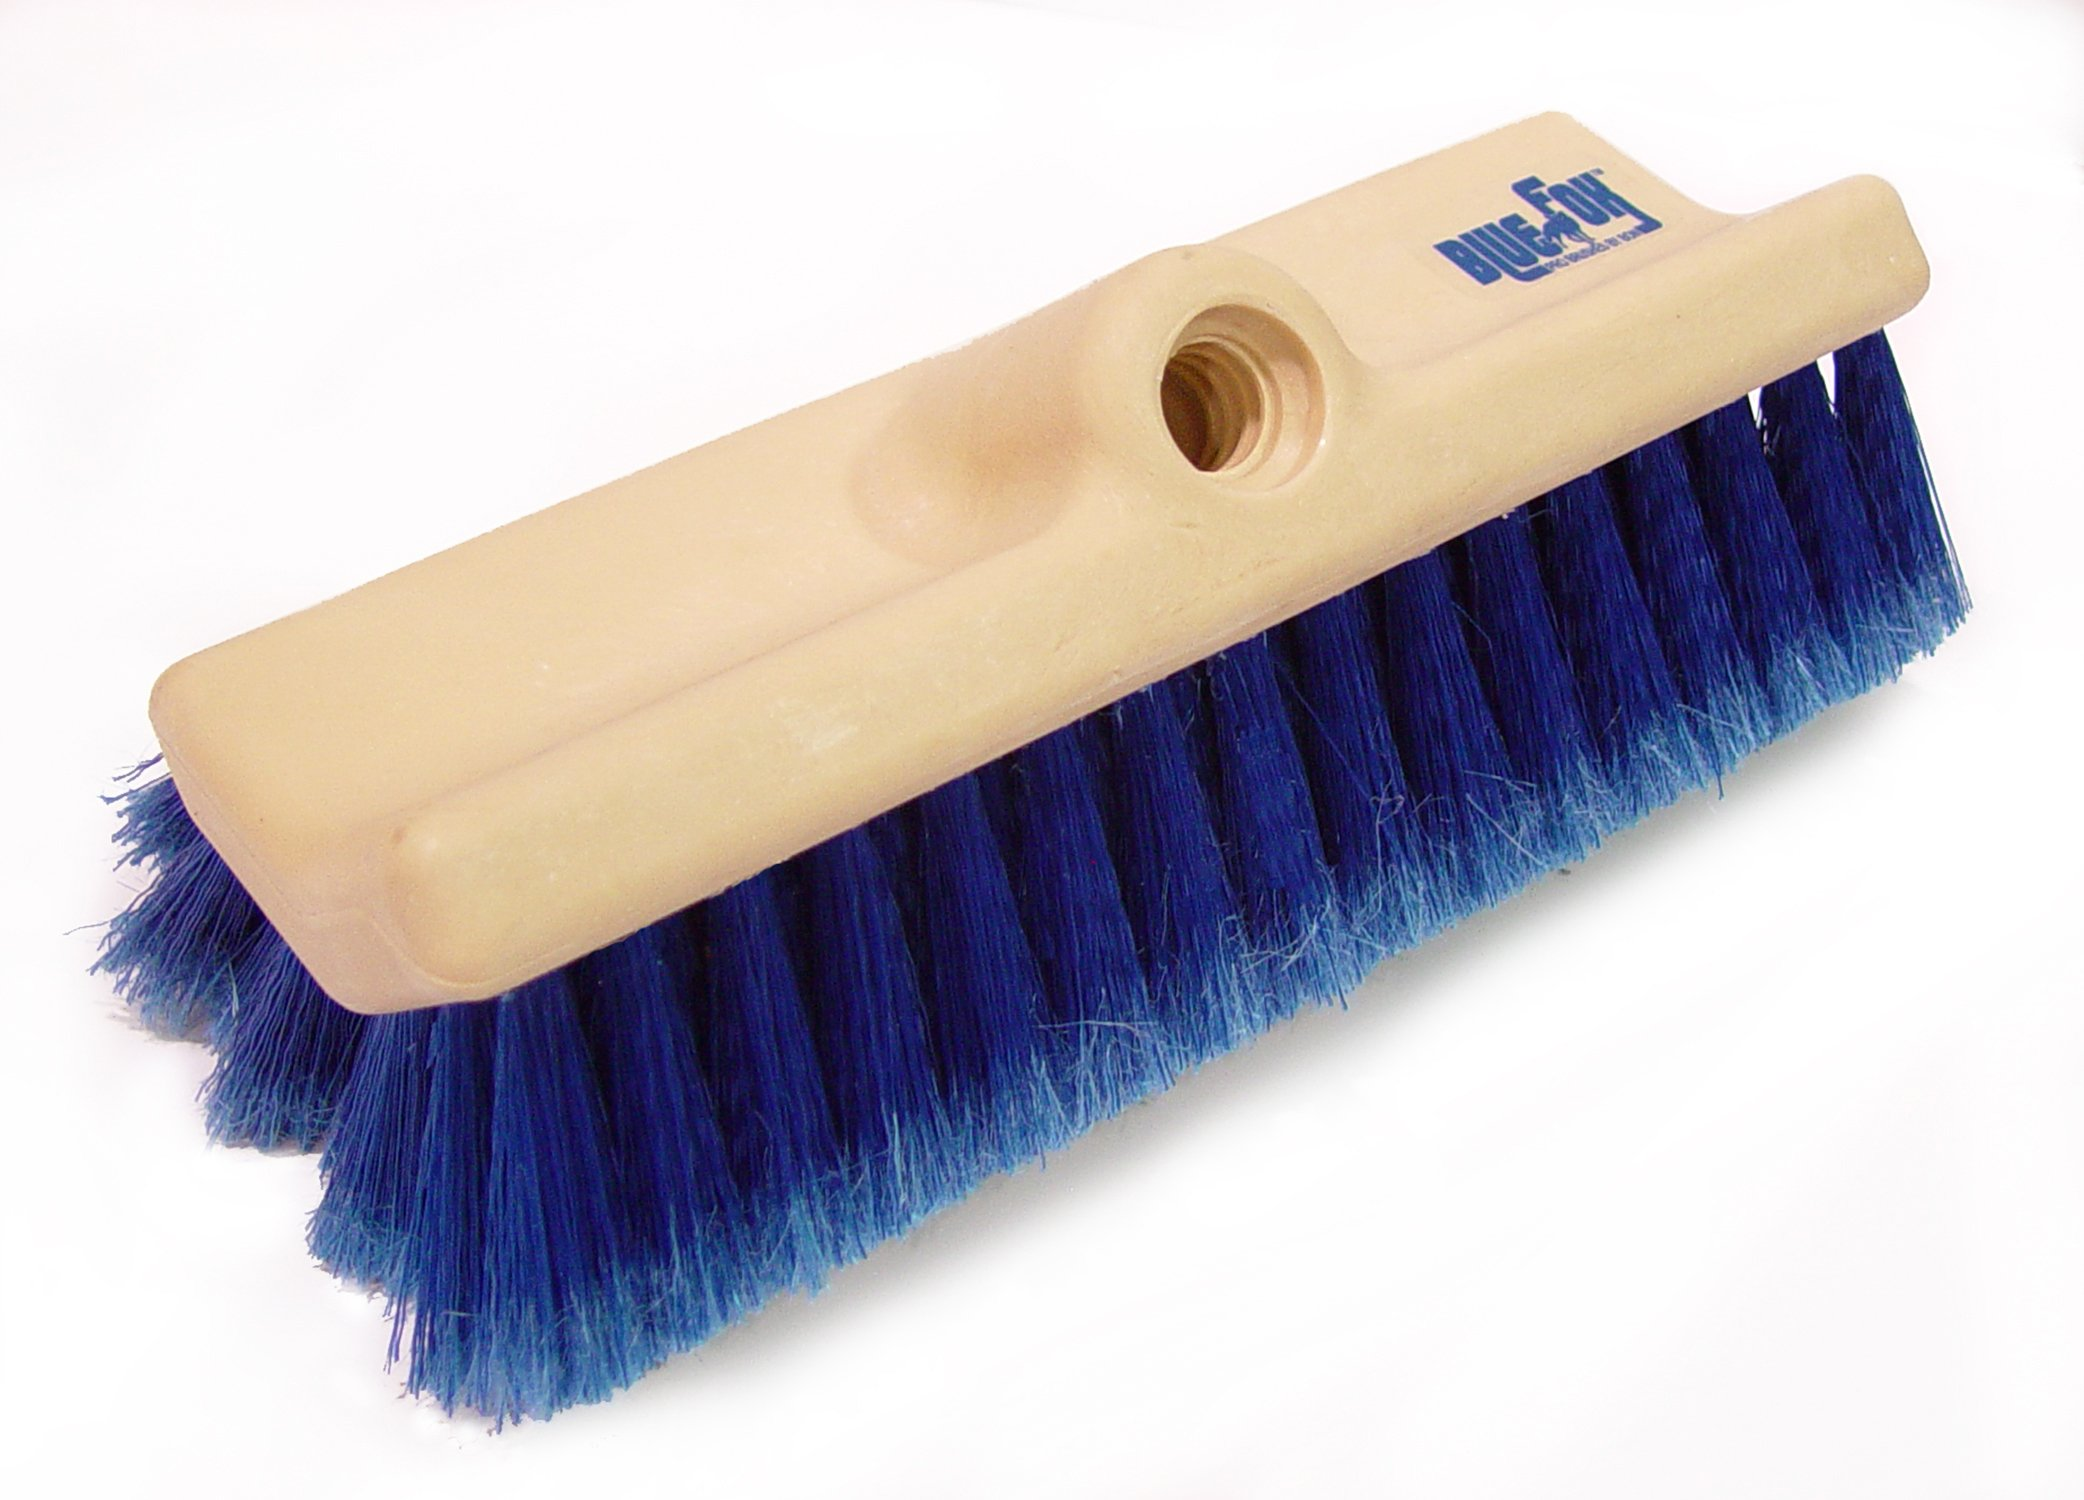 Bon 84-956 Blue Fox Dual Angle Wash Brush, 10-Inch Length by 2-Inch Trim